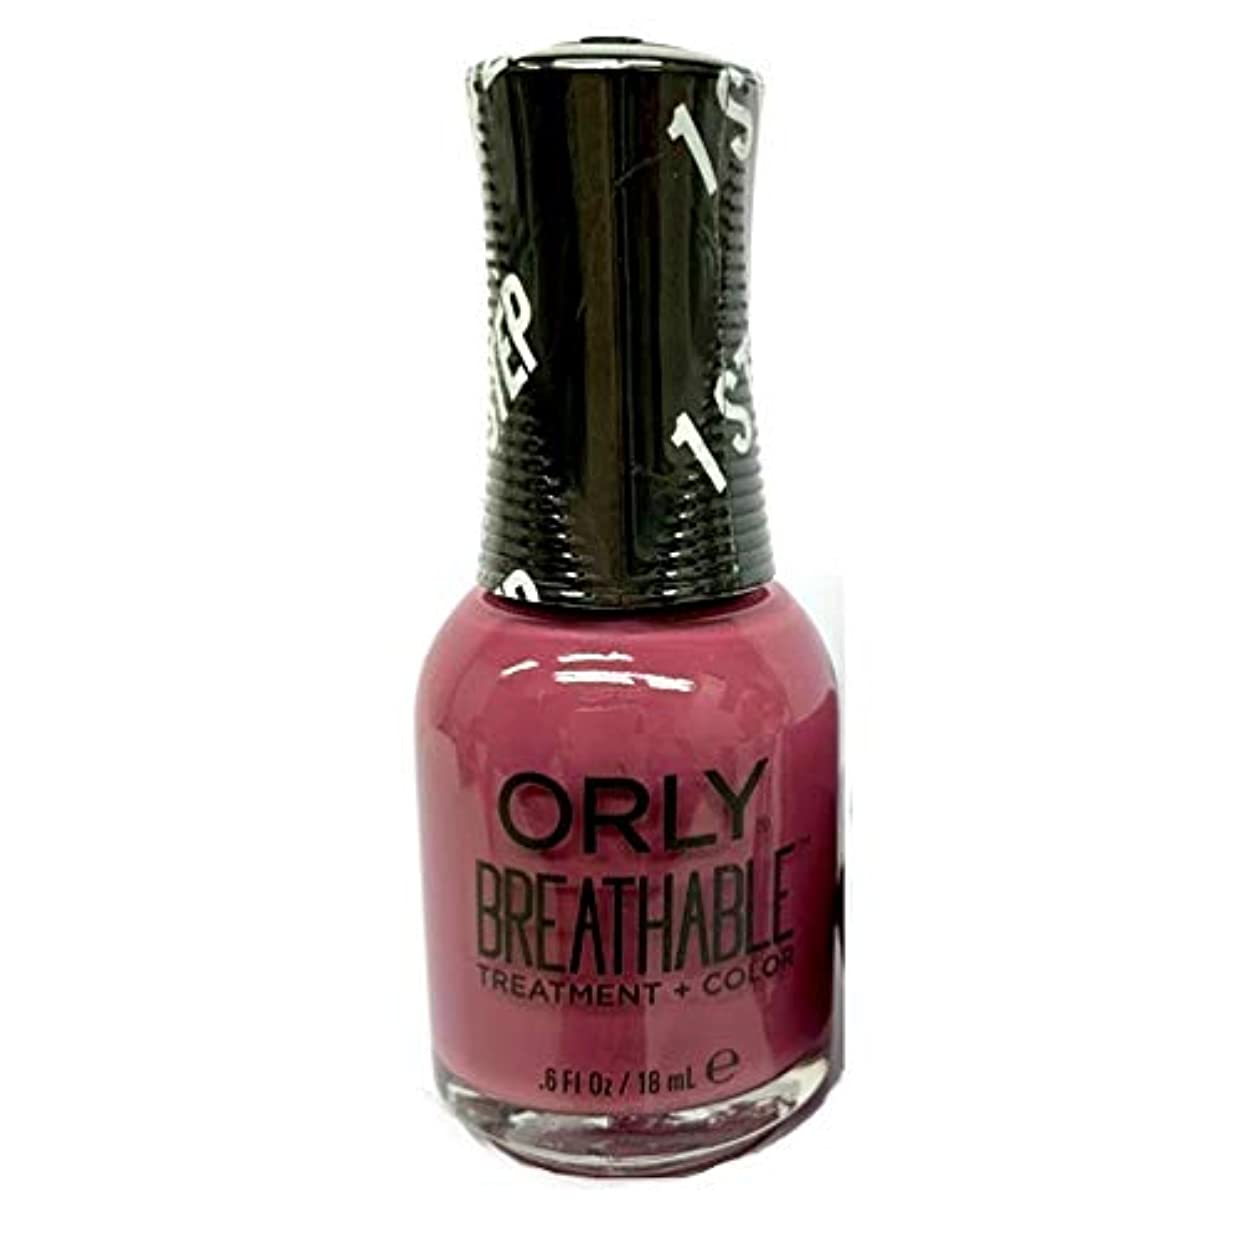 ORLY Breathable Lacquer - Treatment+Color - Cosmic Shift 2019 Collection - Supernova Girl - 18mL / 0.6oz